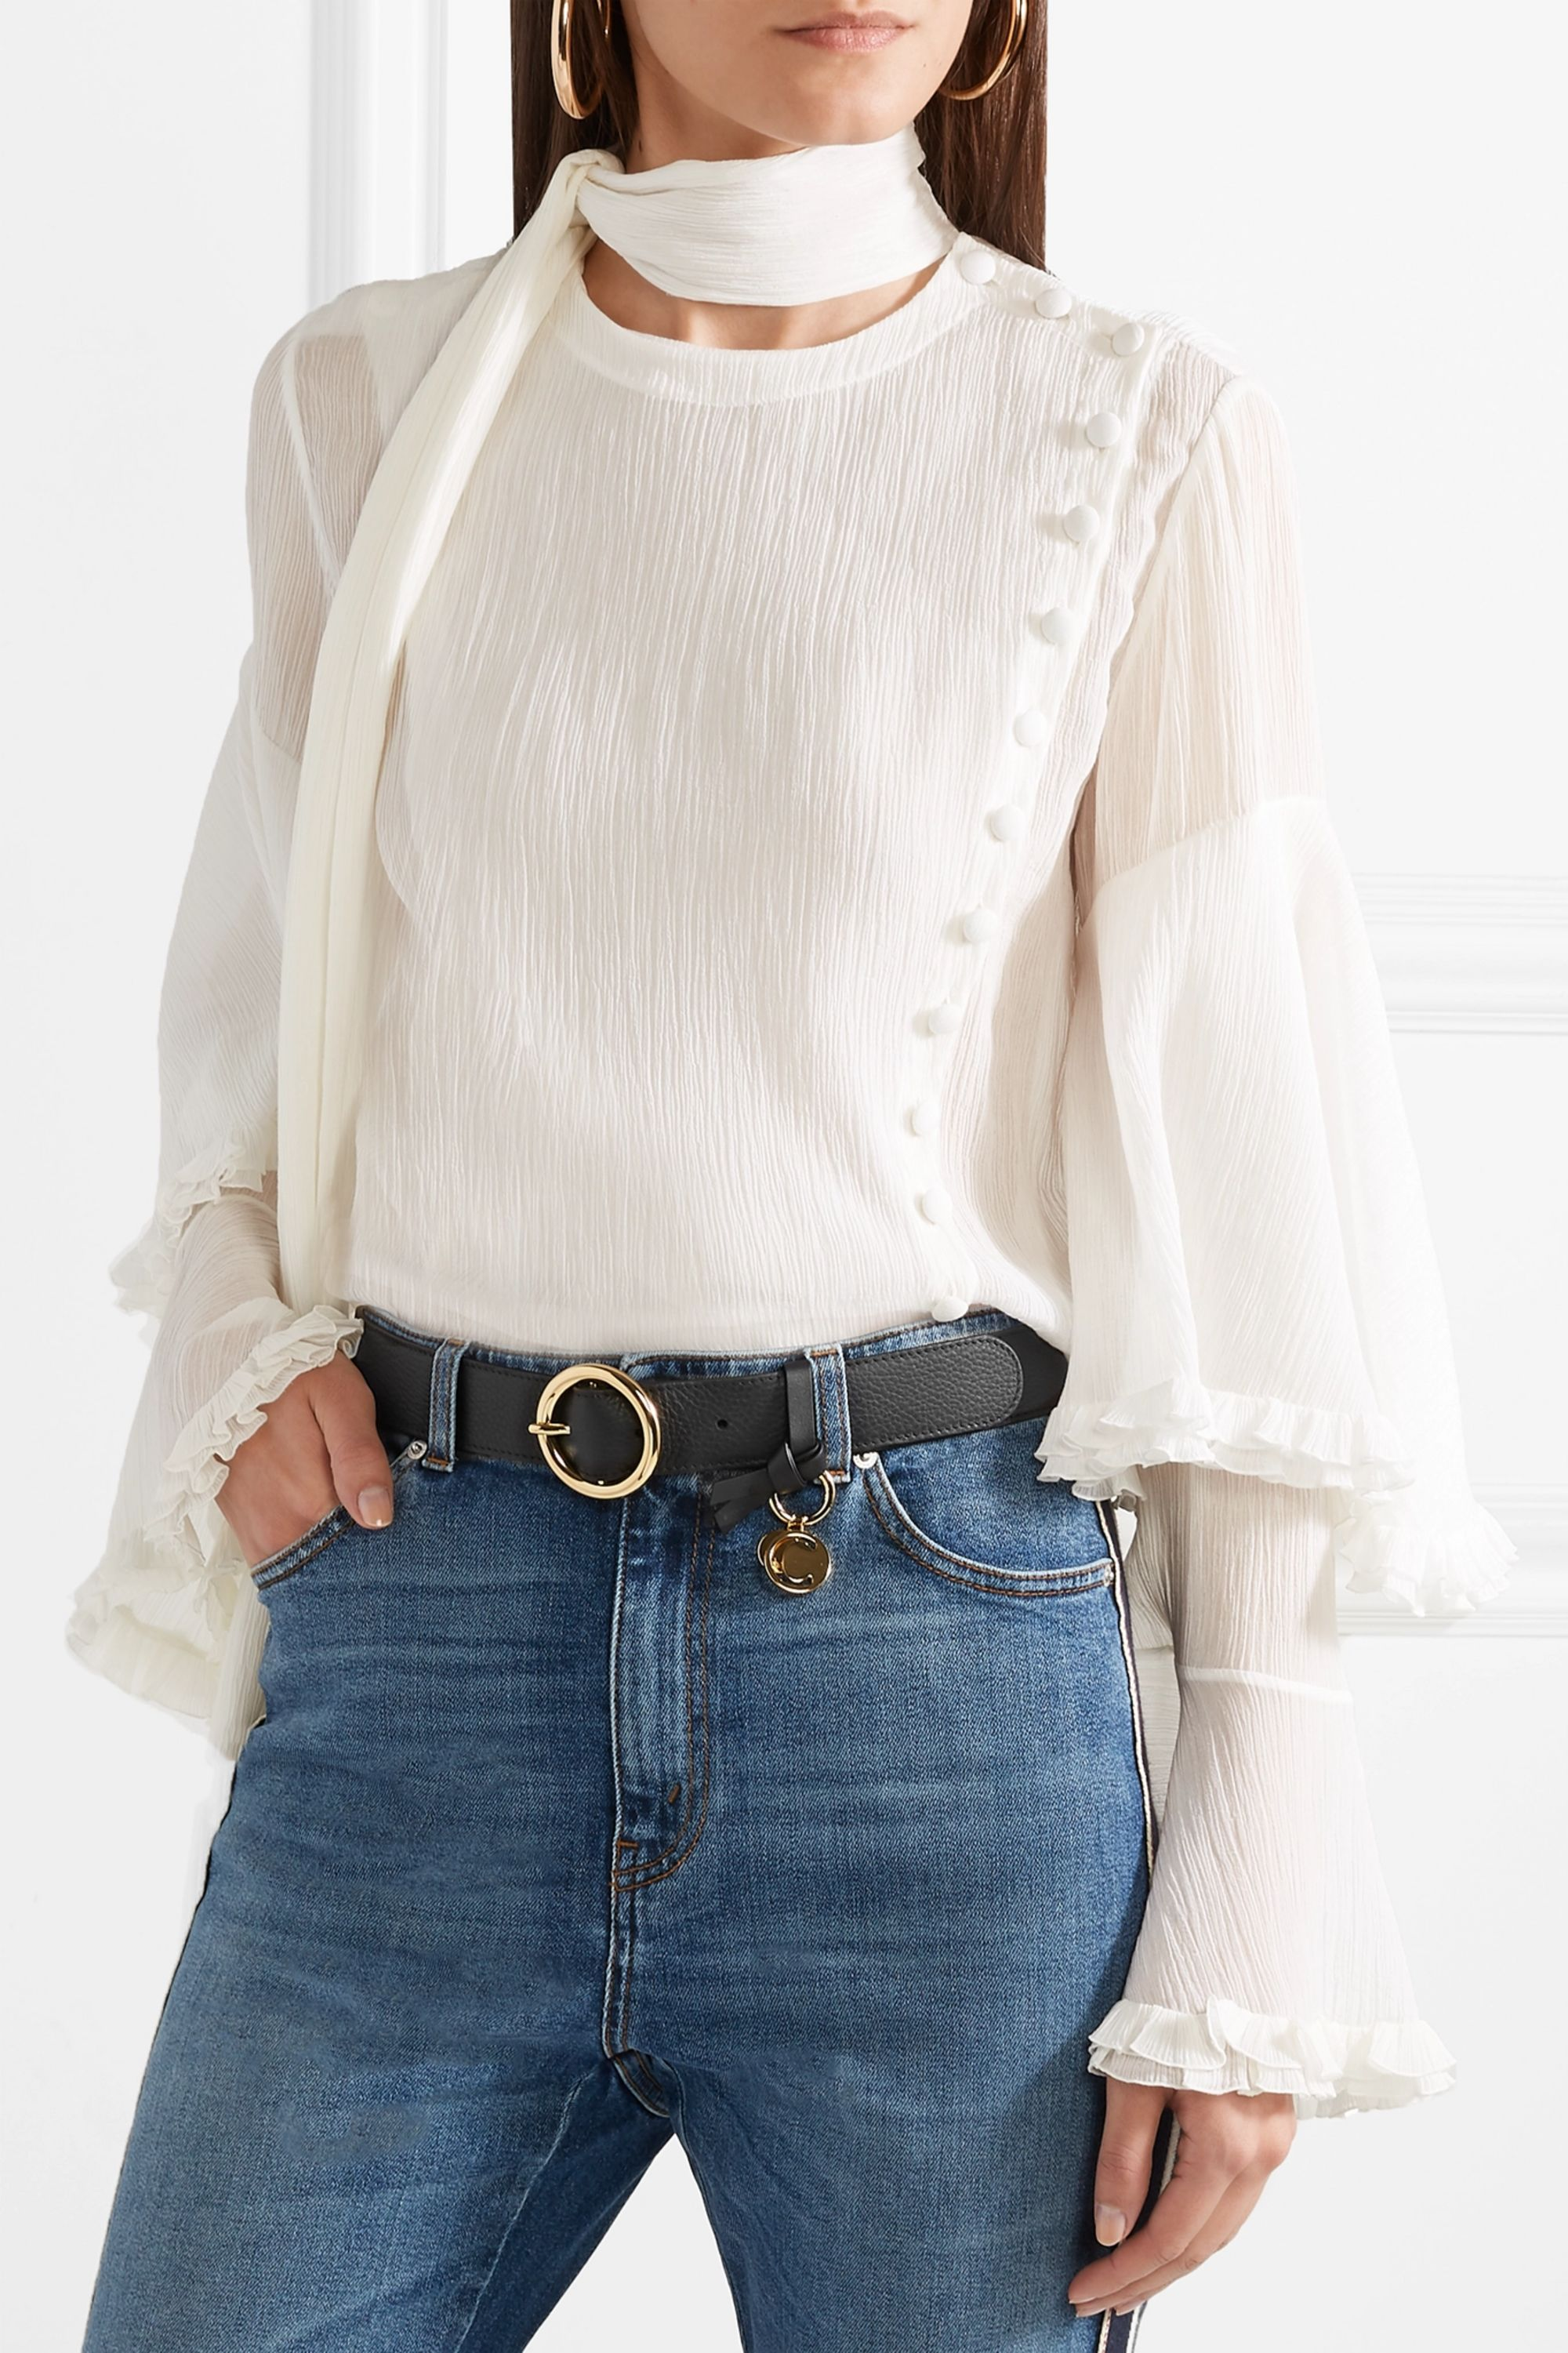 Chloé Textured-leather belt